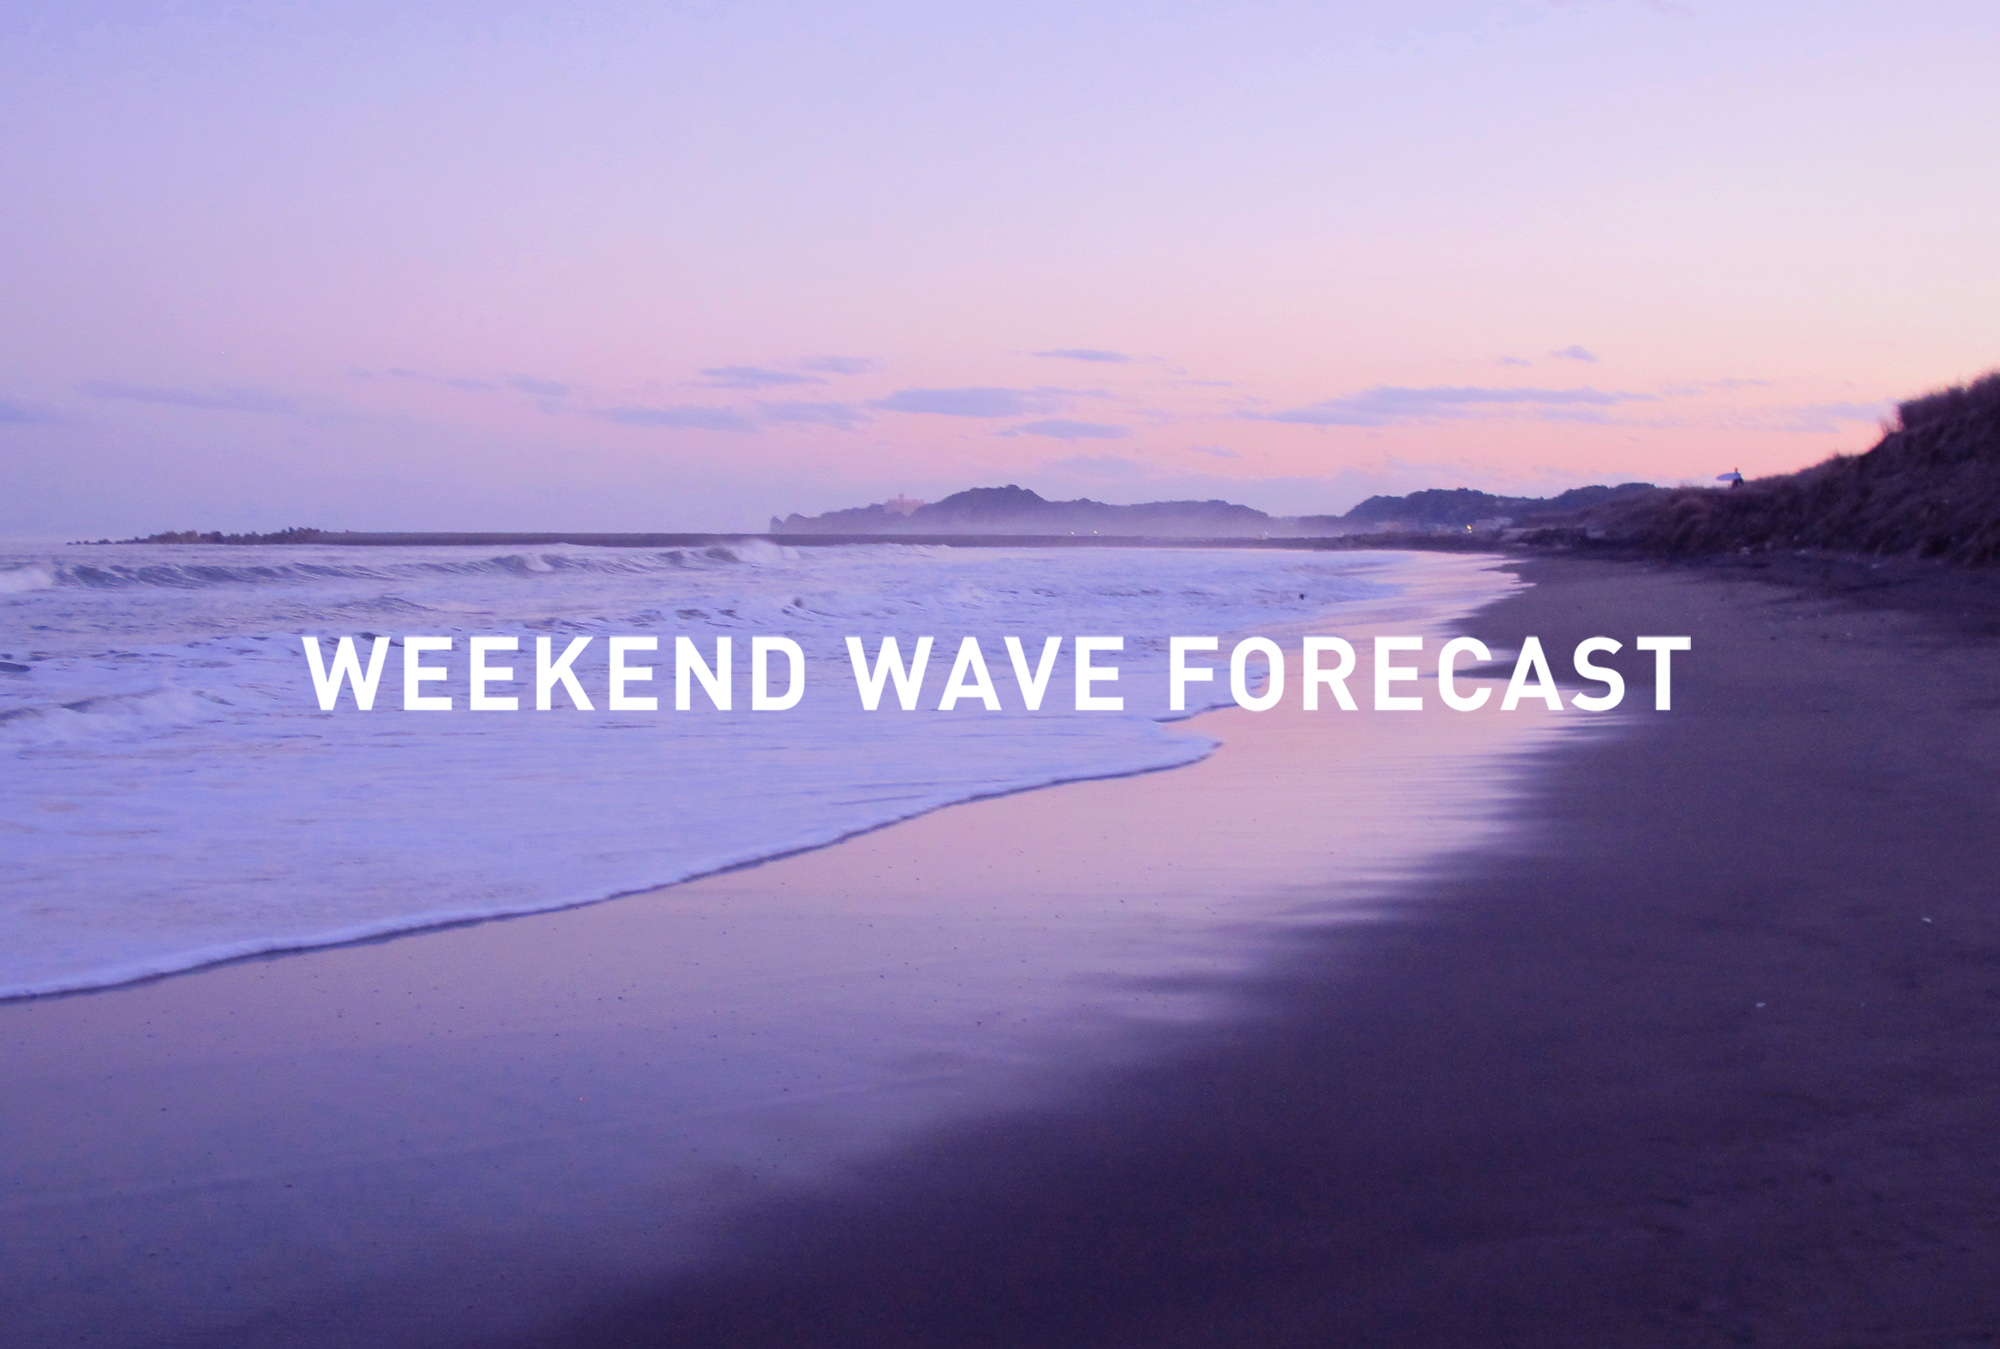 weekend wave forecast 0915